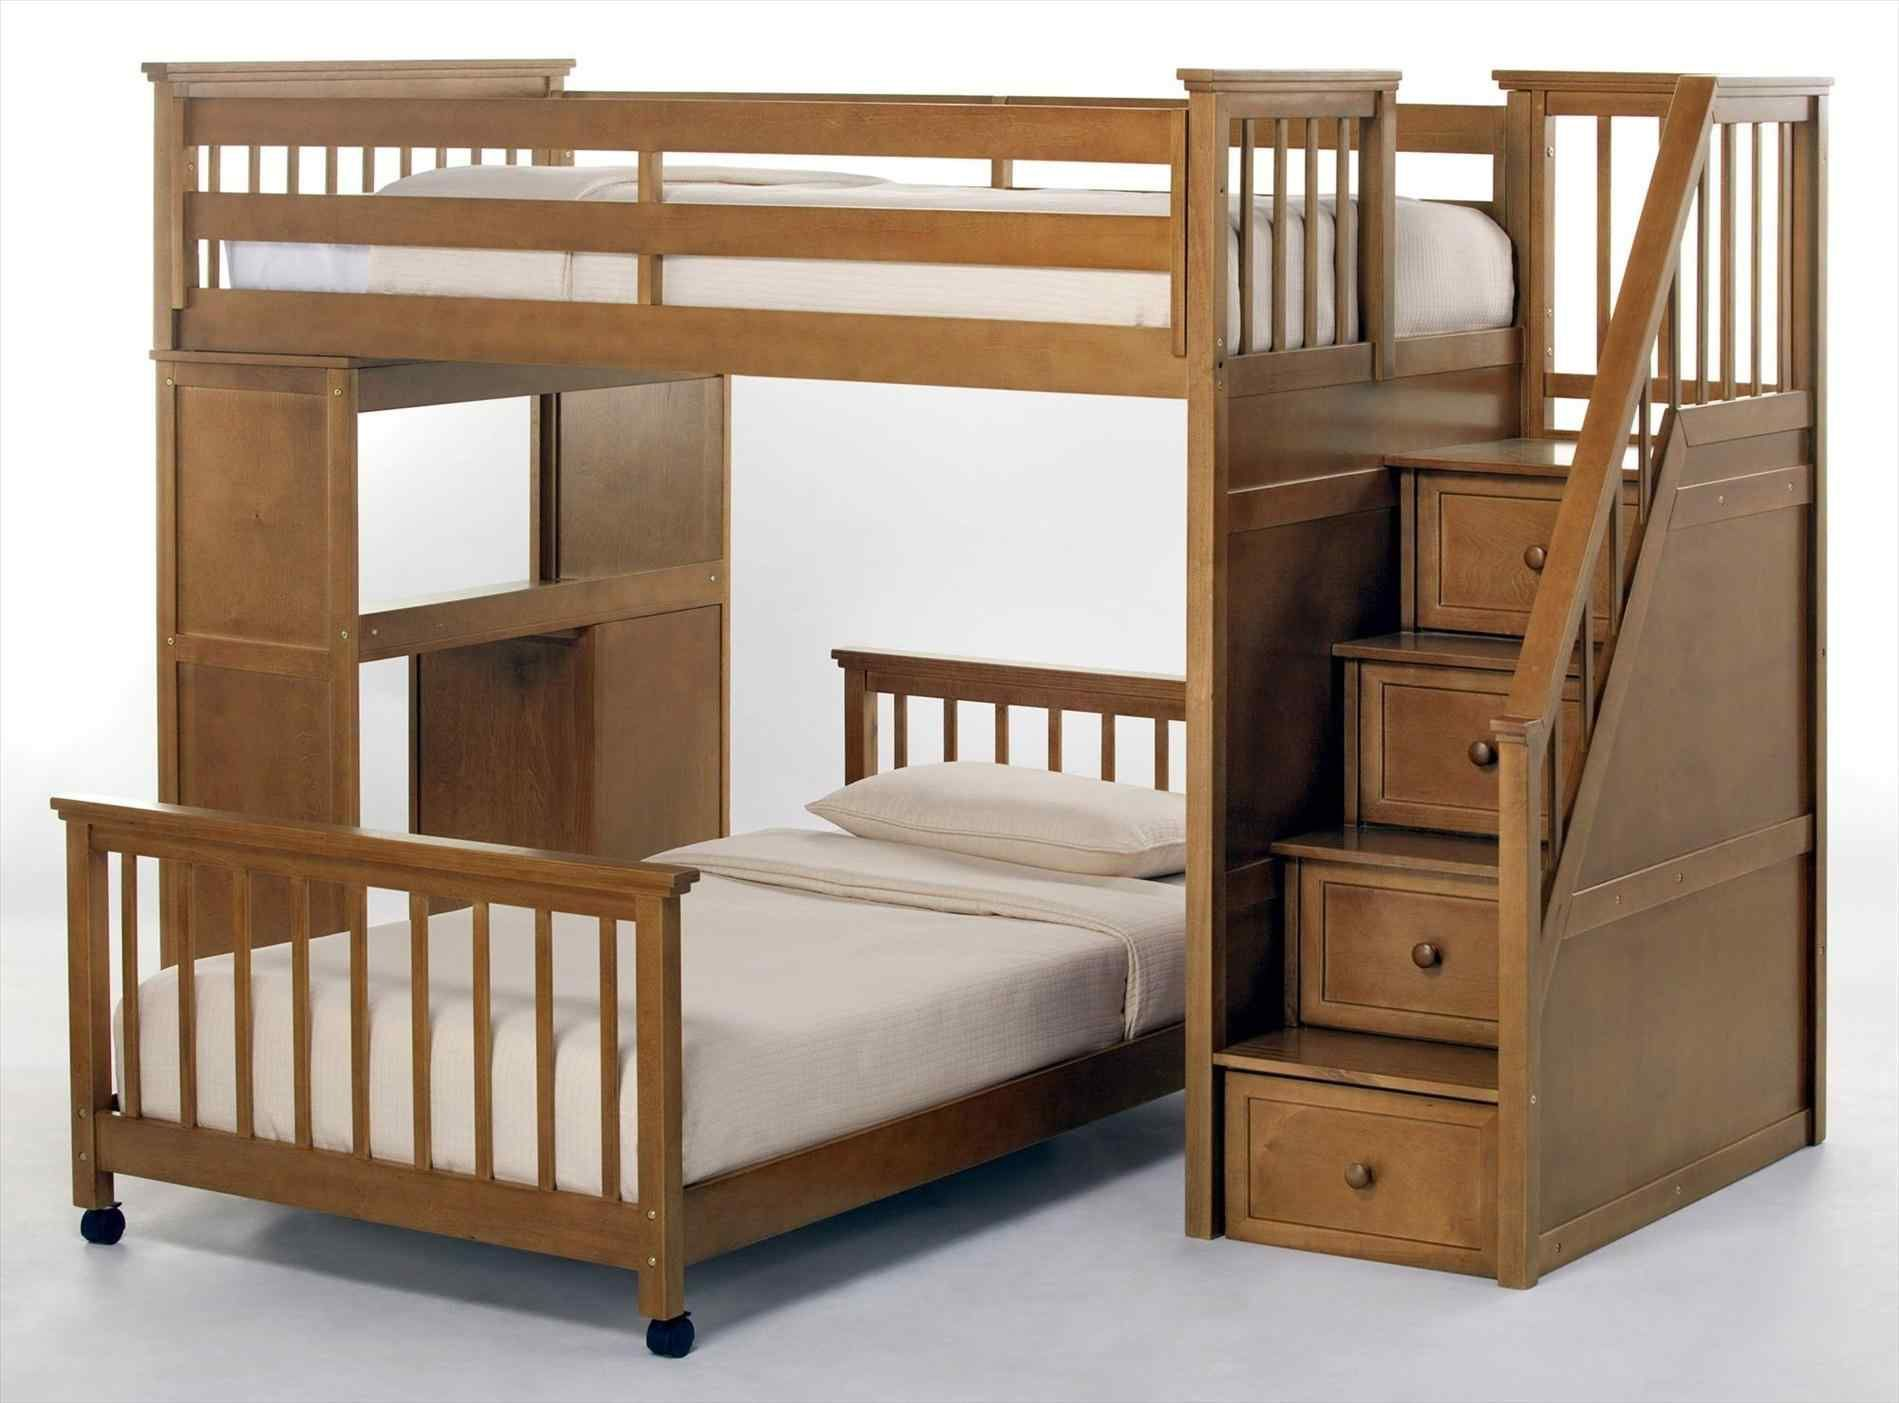 Double Bunk Bed With Desk Underneath Desk Decorating Ideas On A Budget Check More At Http Www Gameintown Com Modern Bunk Beds Bunk Beds Full Size Bunk Beds